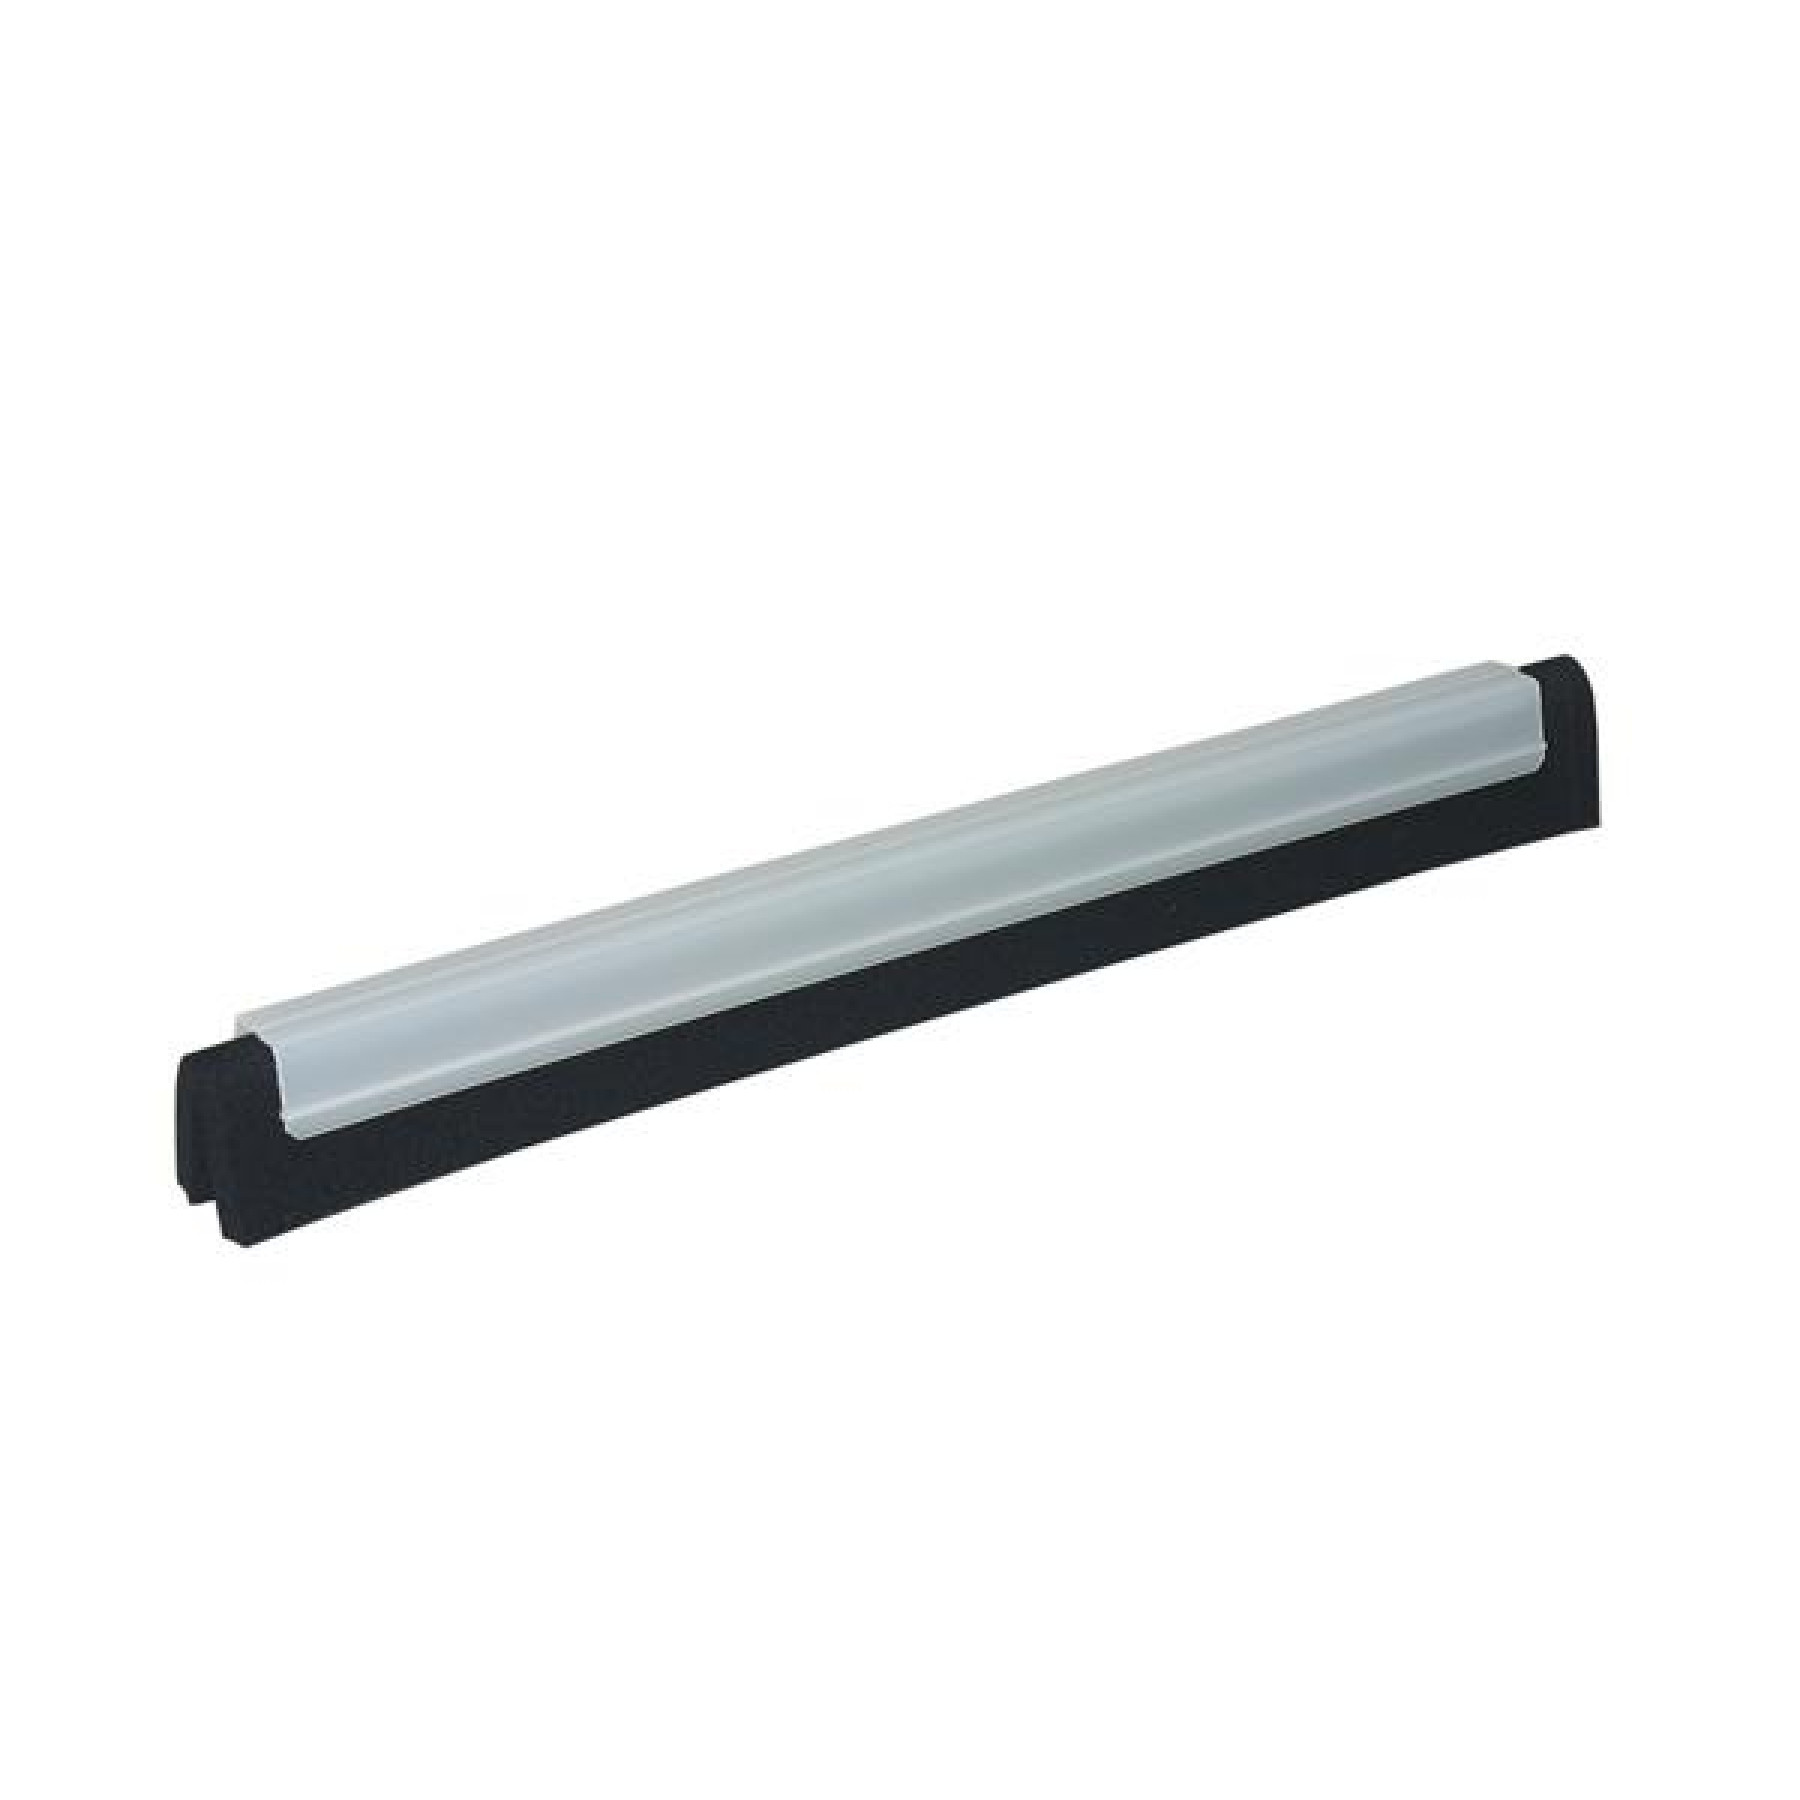 Vervangingscassette 500mm wit (voor oude serie)